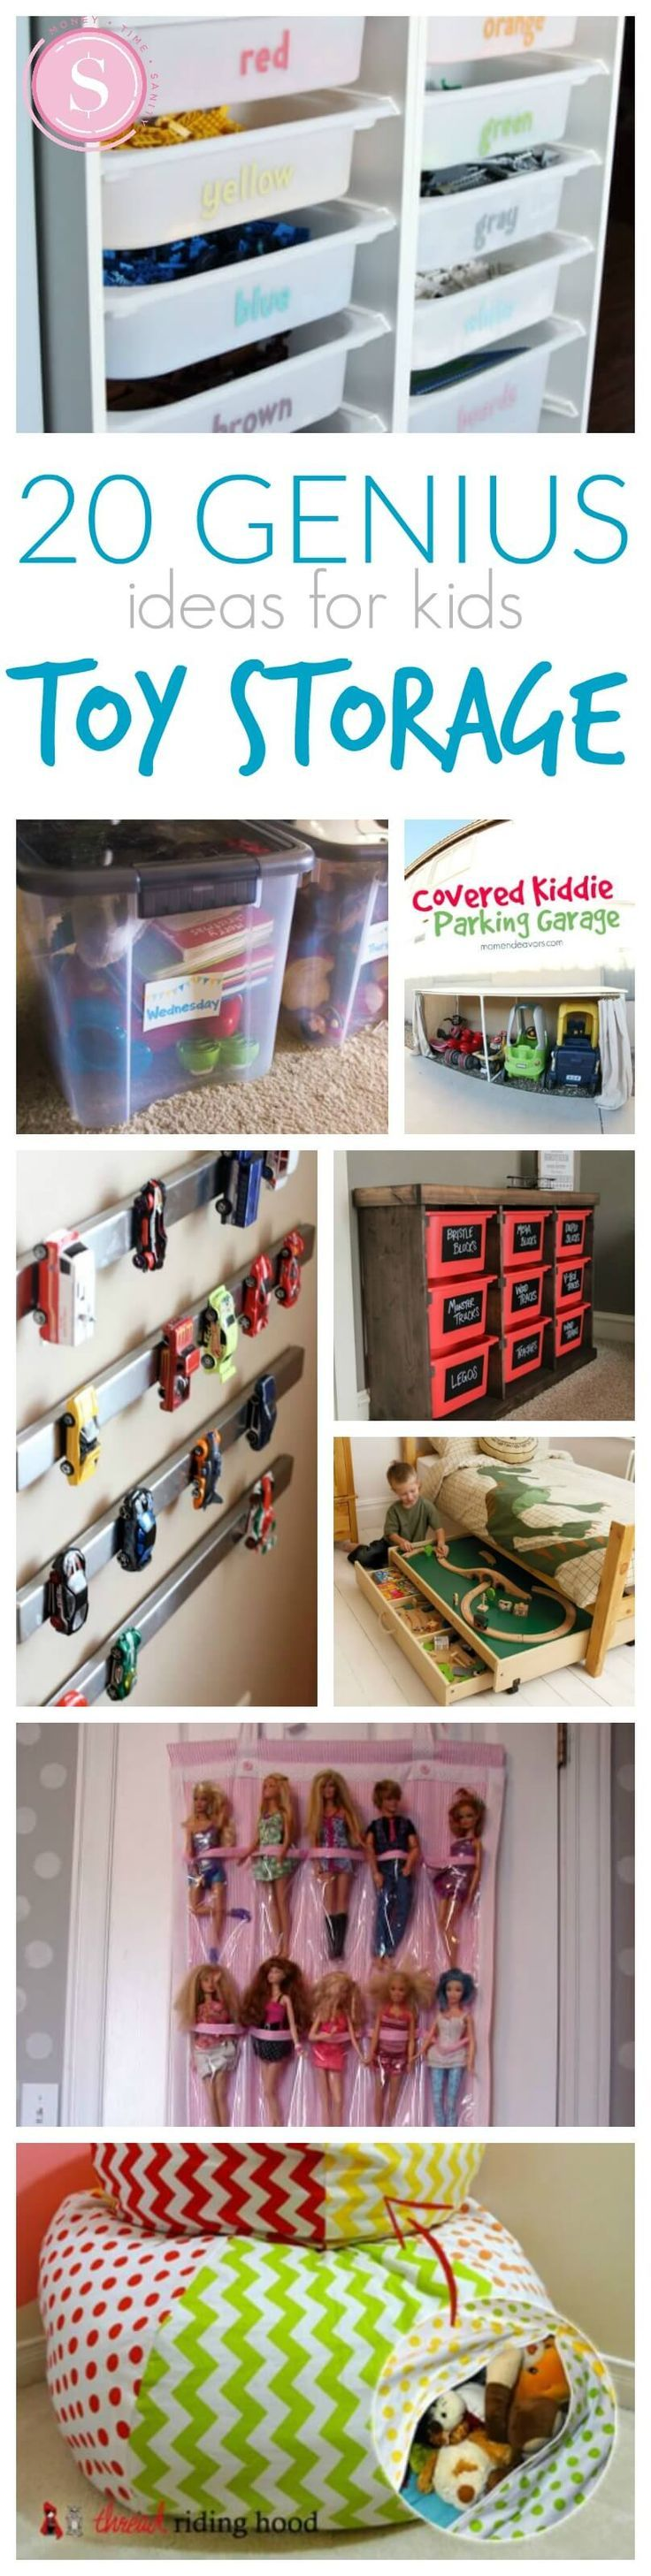 20 Genius Ideas for Organizing Your Kid's Rooms! Great tips and tricks for…